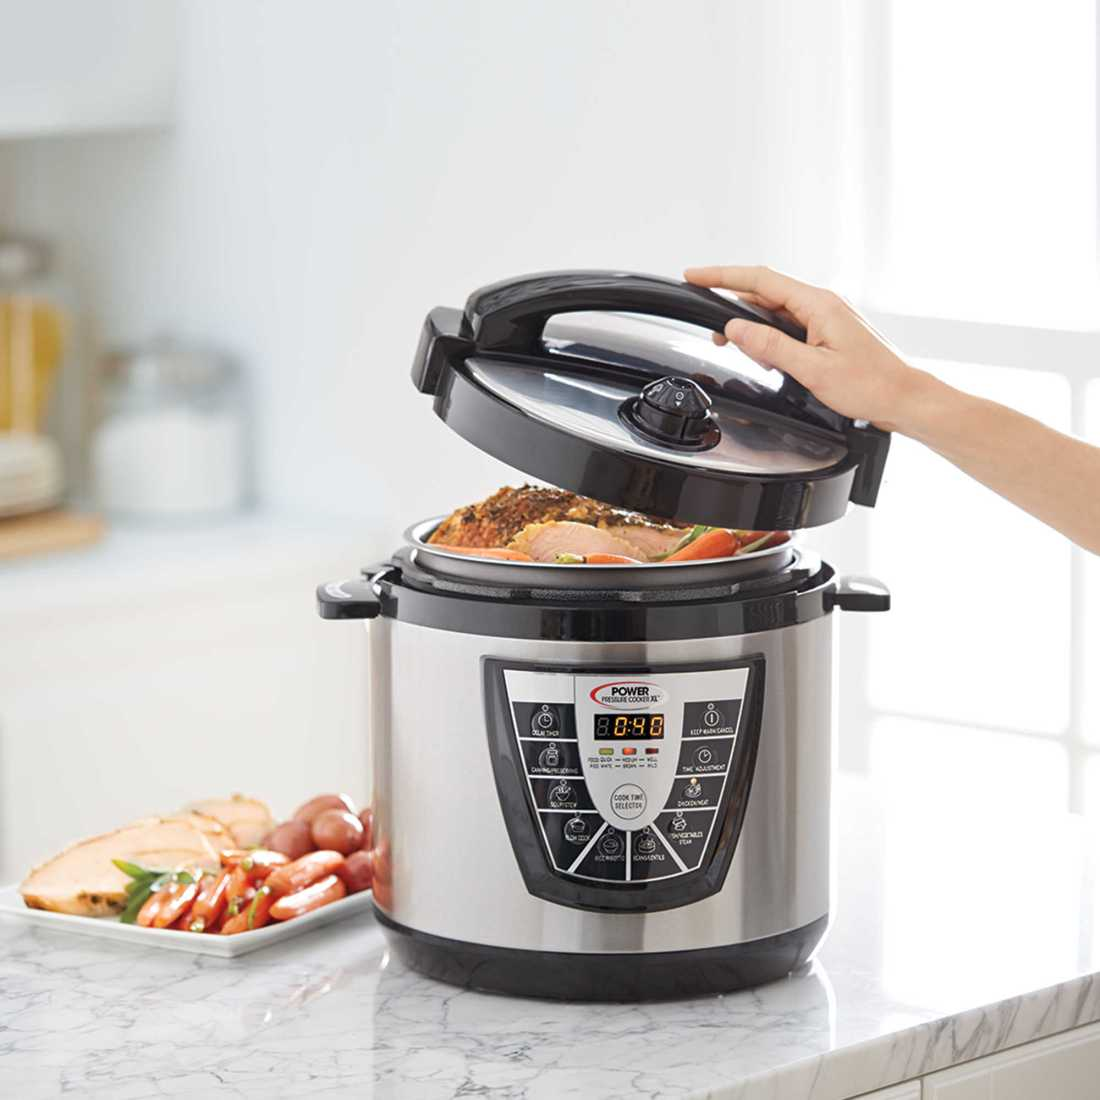 Power Pressure Cooker XL Lawsuit